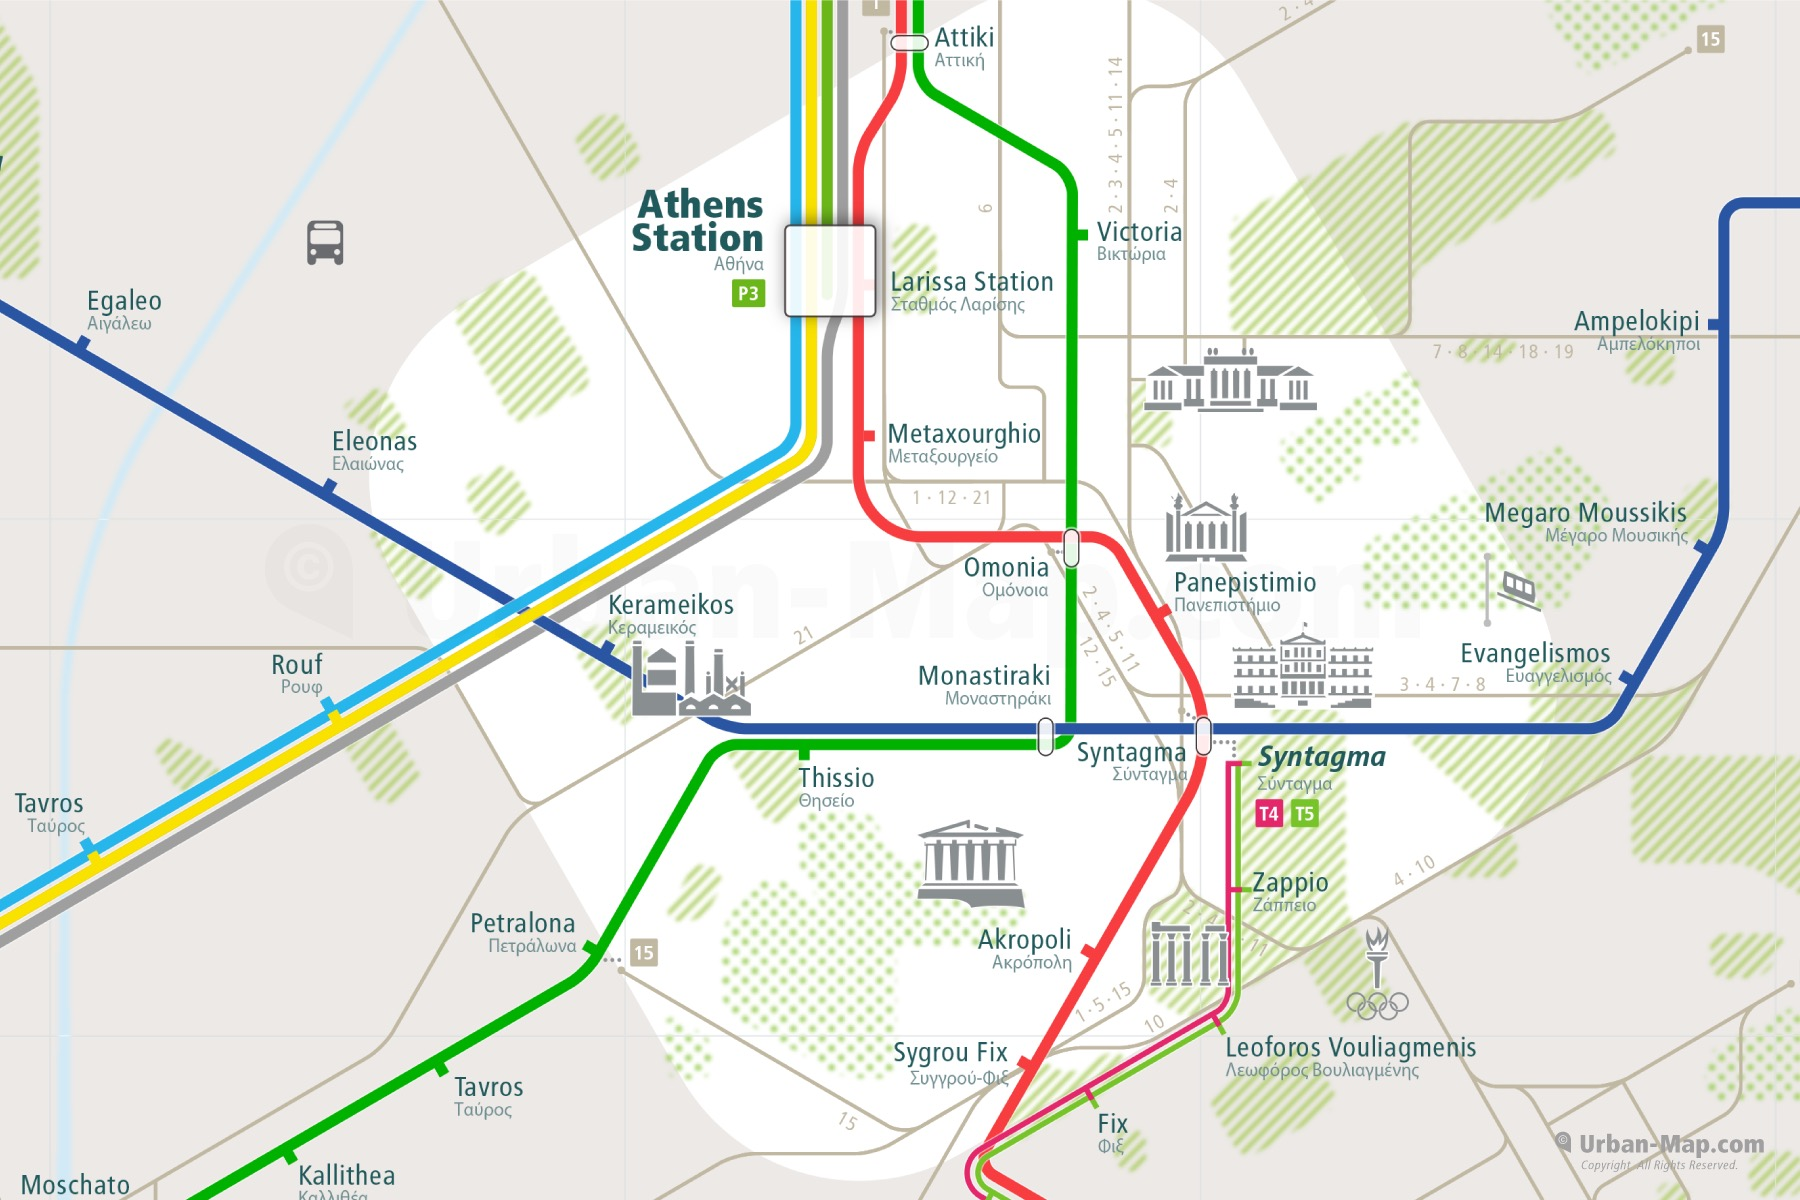 Athens City Rail Map shows the train and public transportation routes of metro, tram, ferry, funicular